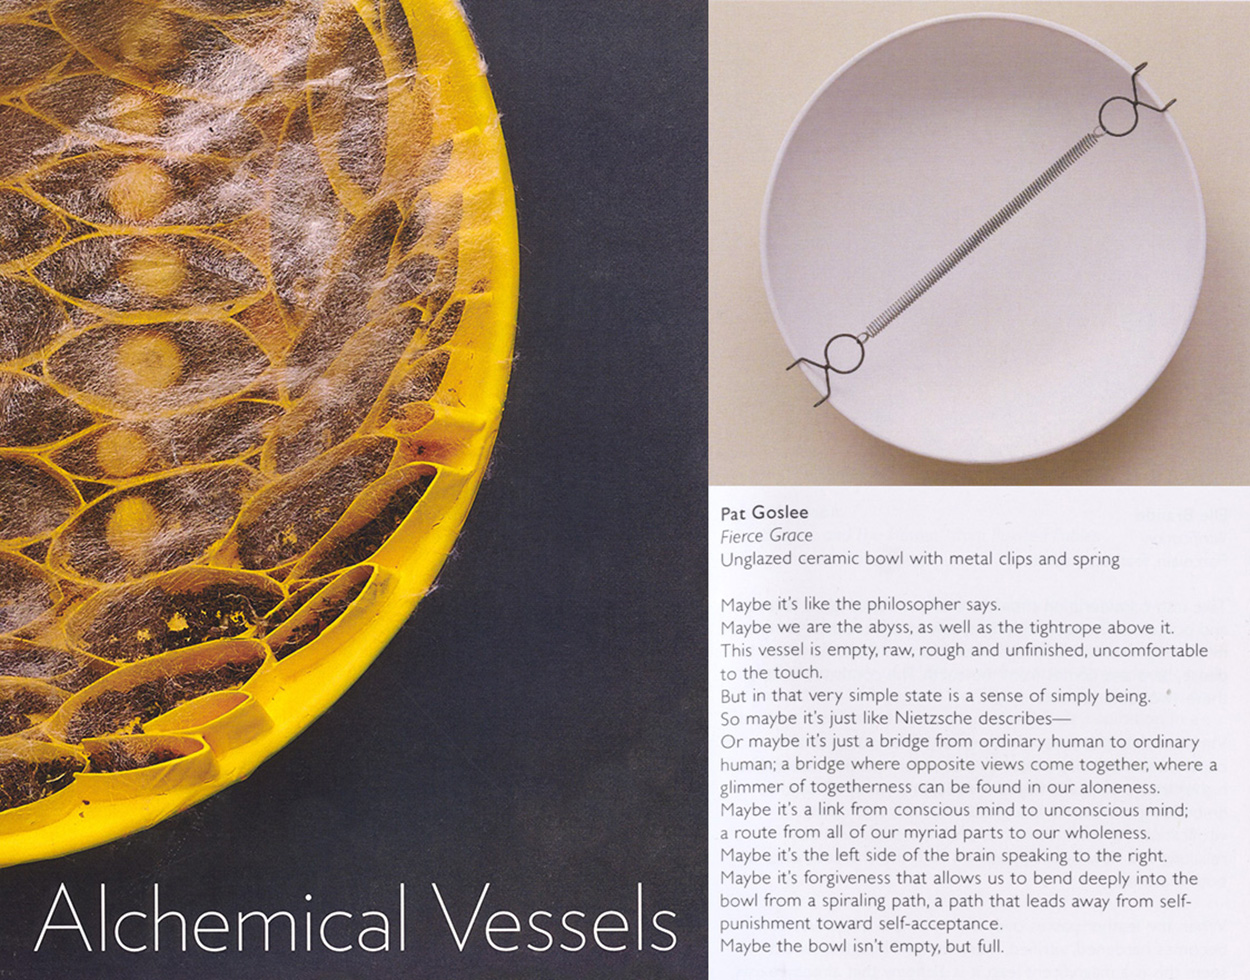 2013 Alchemical Vessels catalog